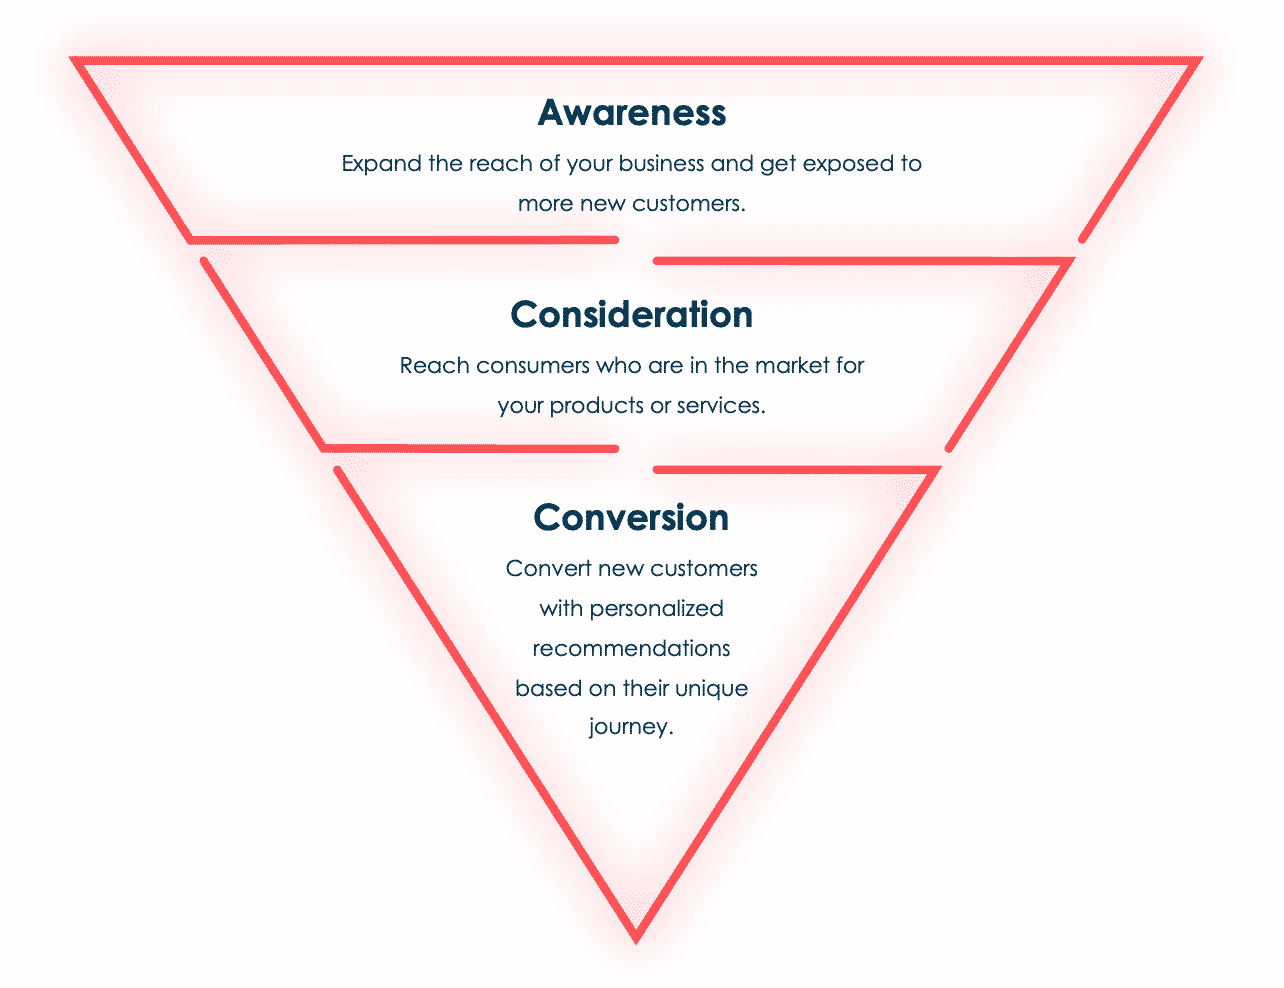 Purchase funnel going from awareness to consideration to conversion.